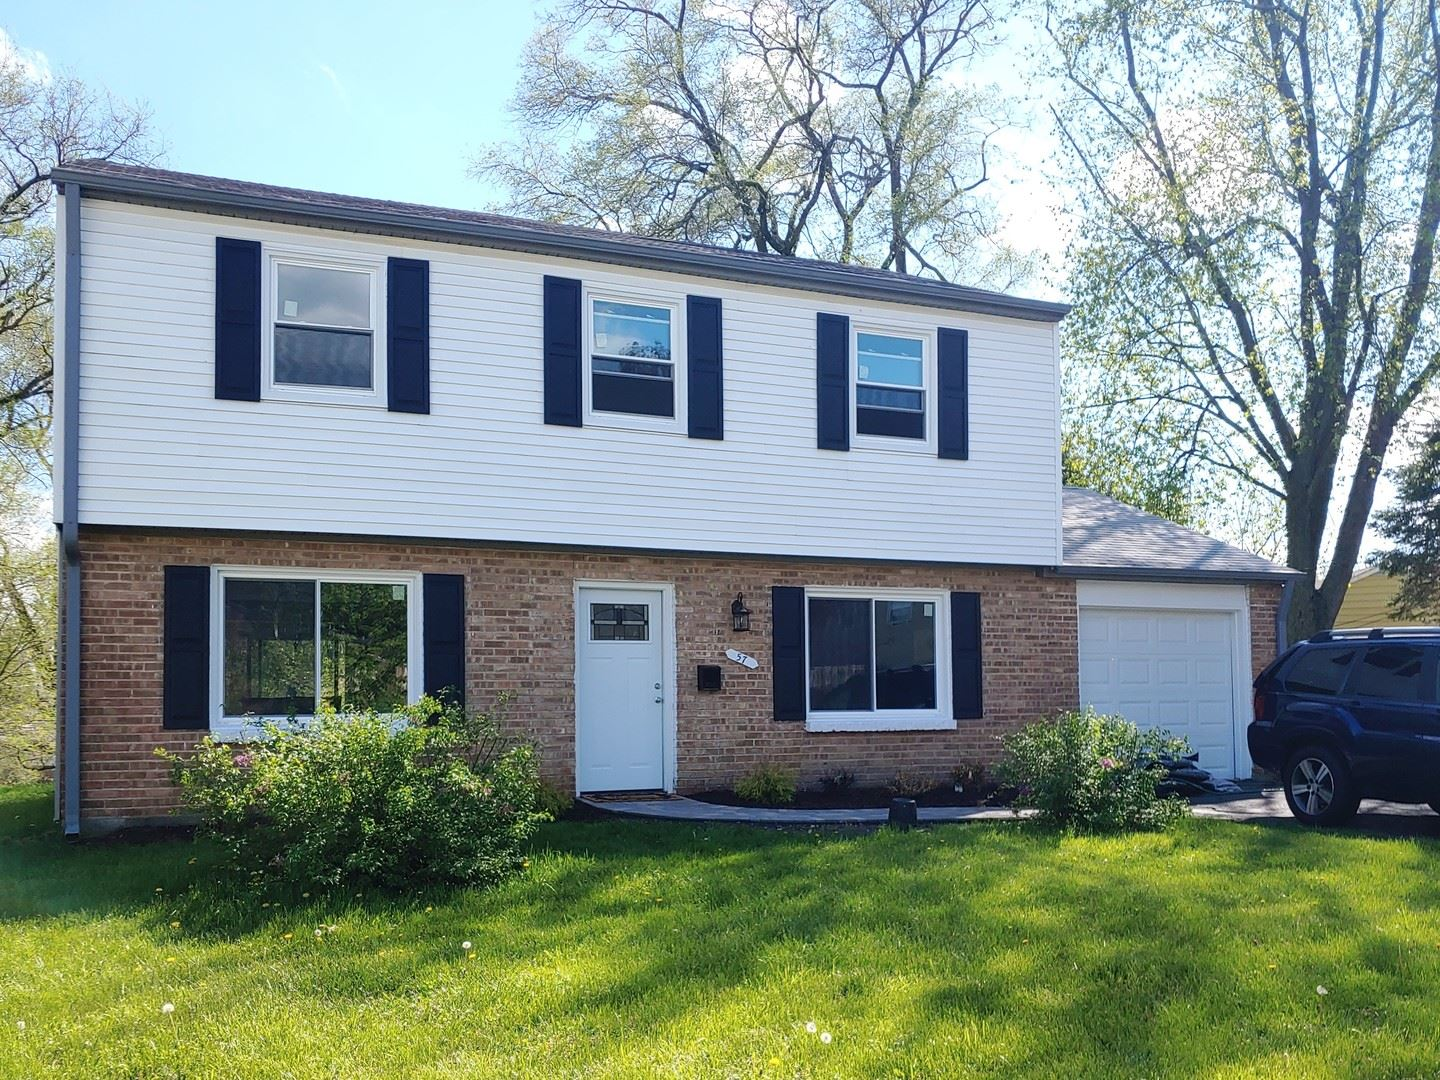 57 GLEN HILL Drive, Glendale Heights, IL 60139 - #: 10716838